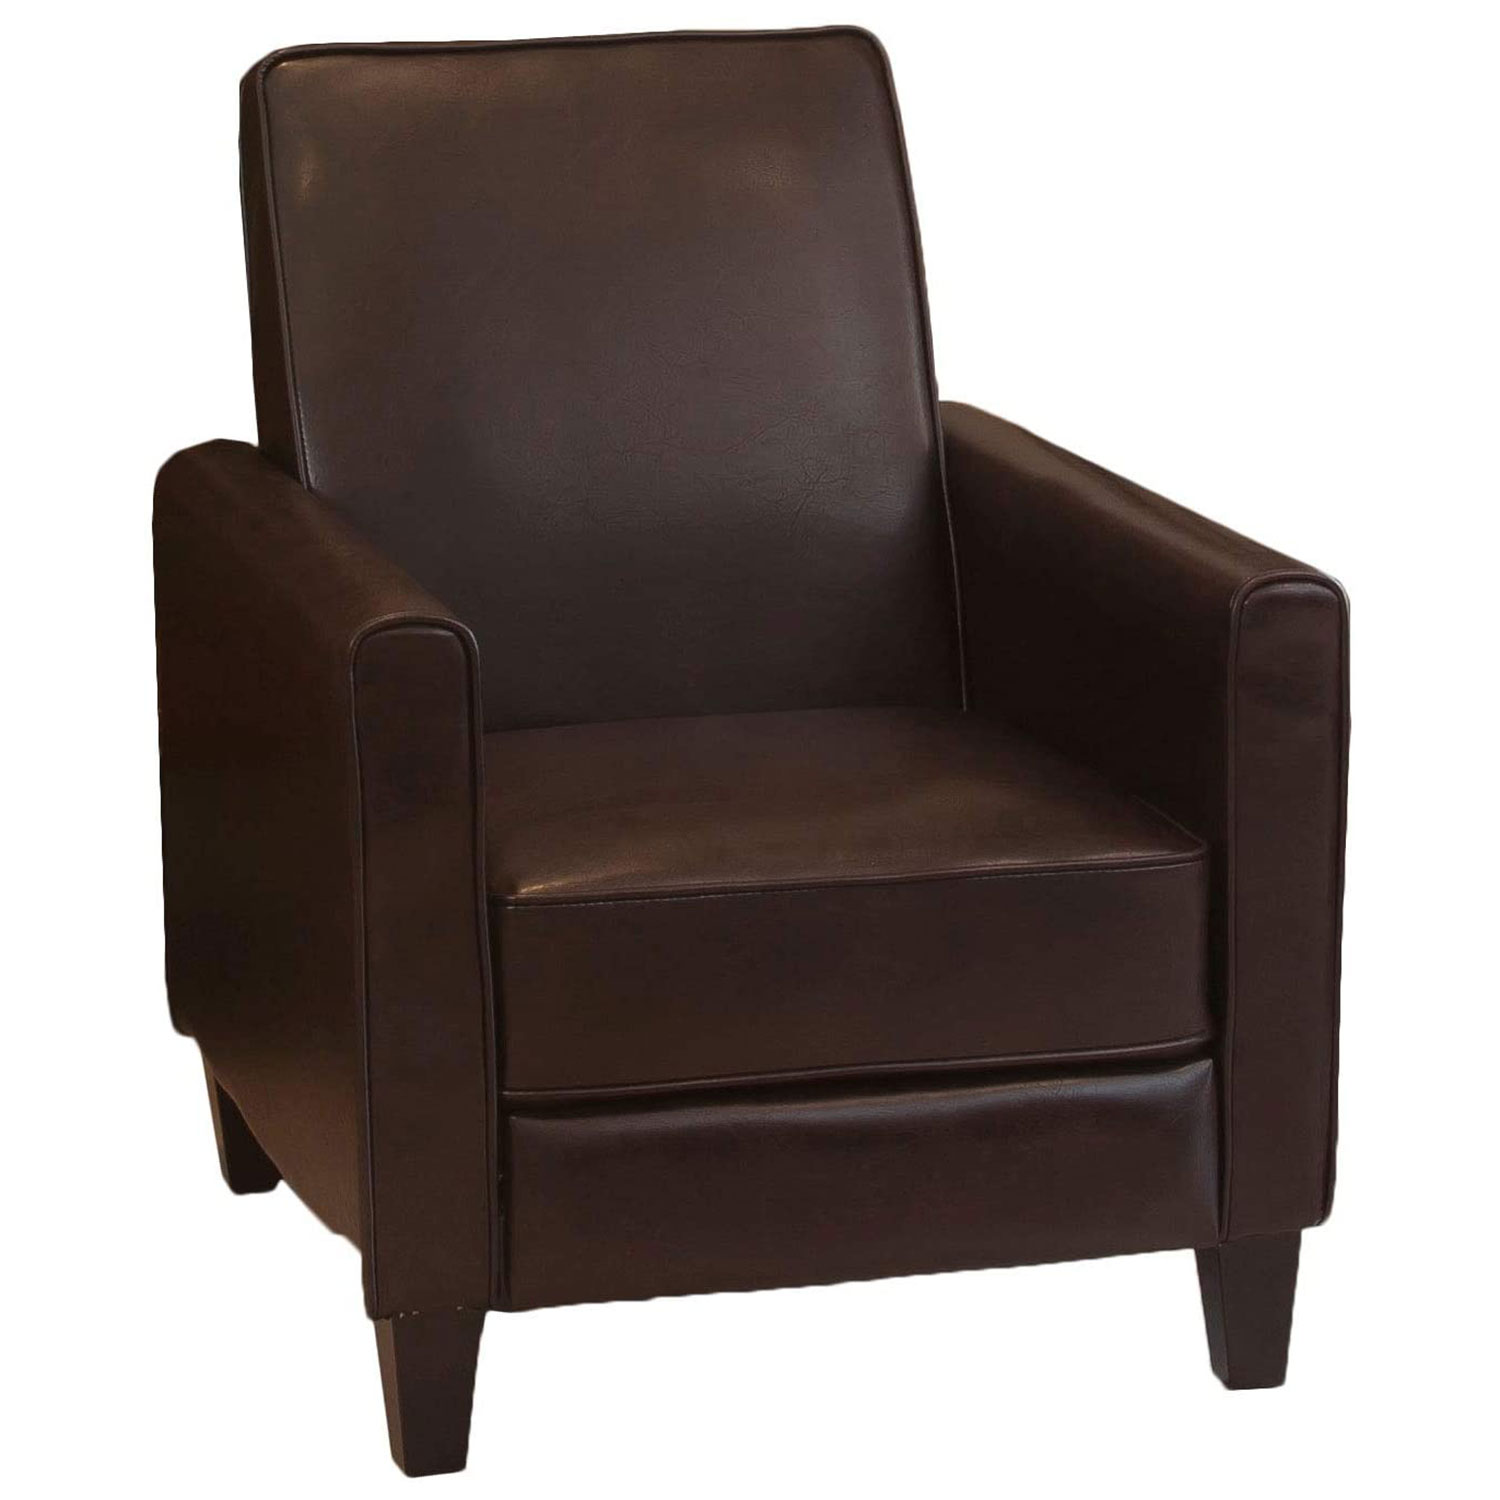 Christopher Knight Home Lucas Chair